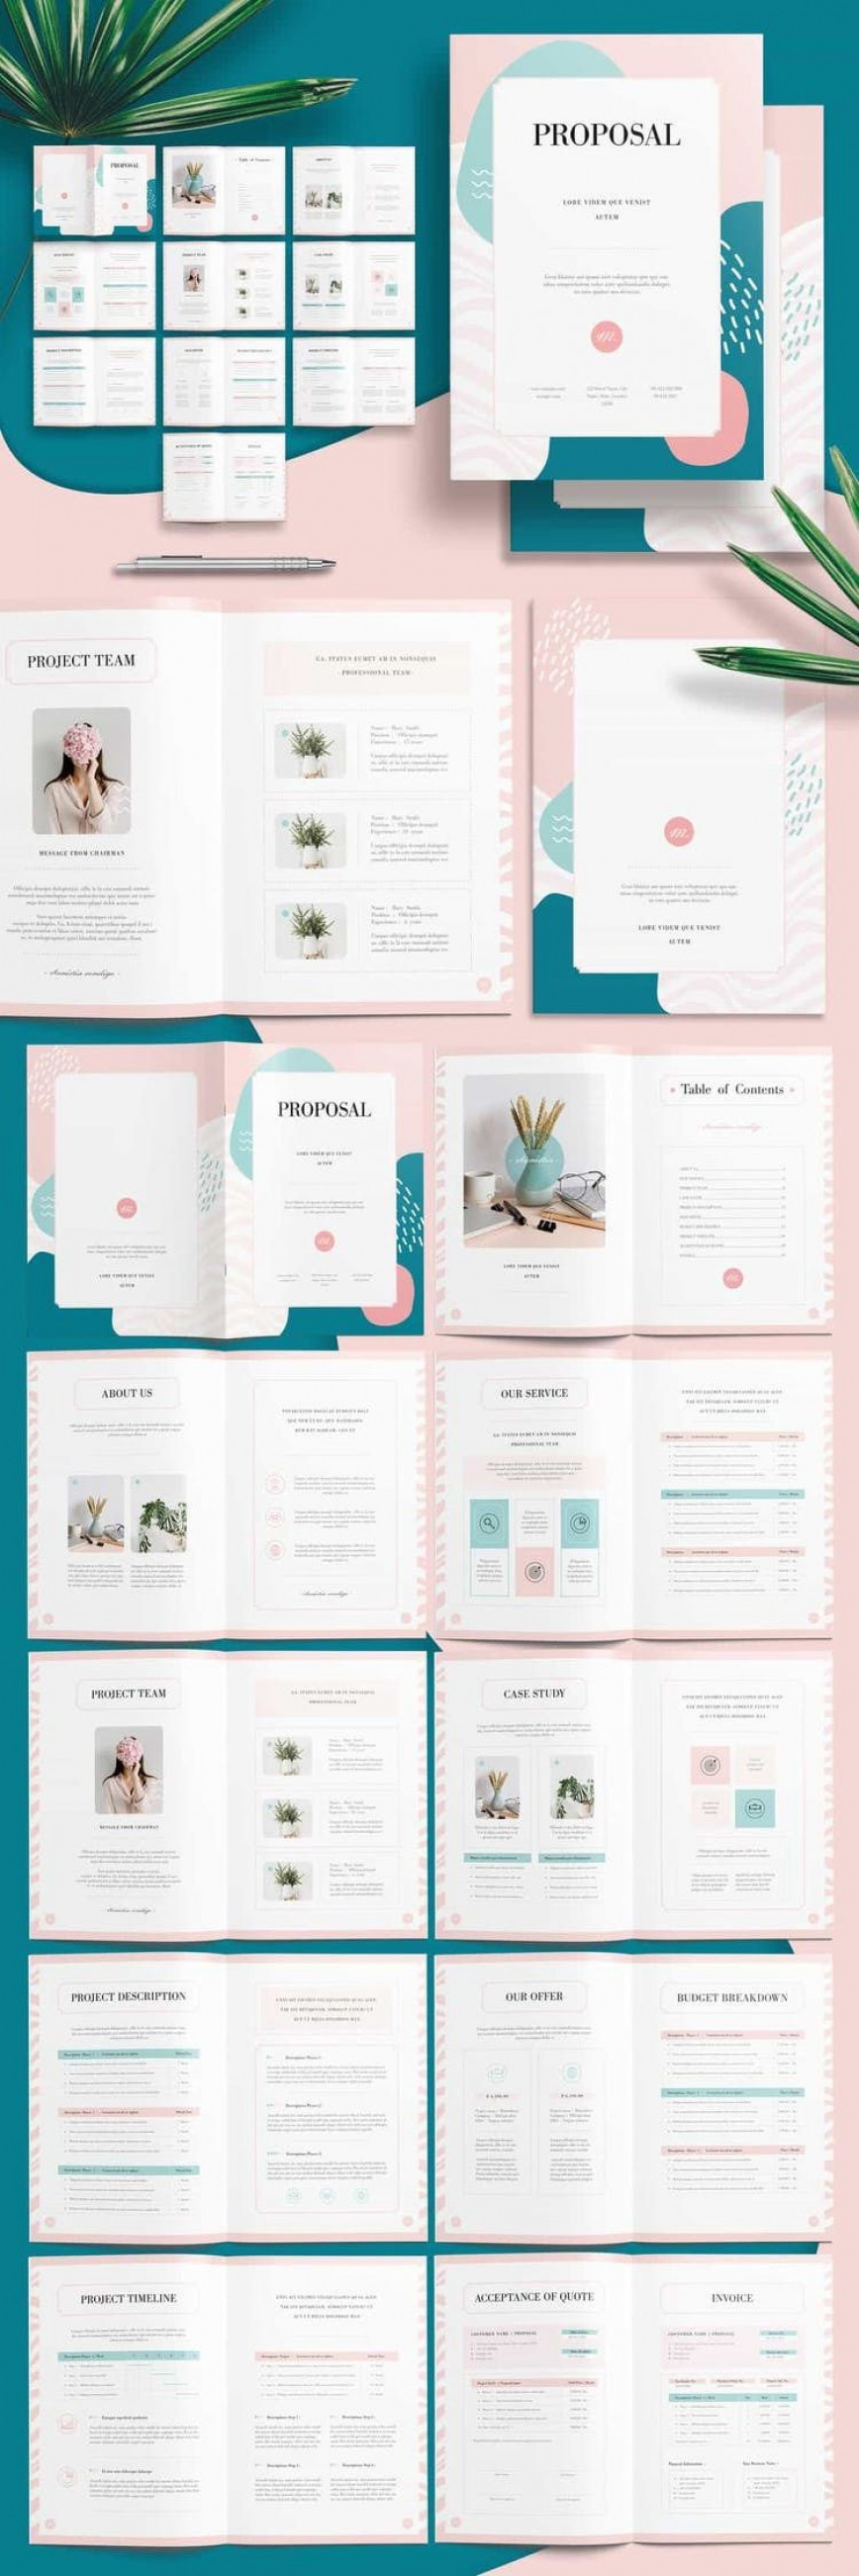 006 Wonderful Annual Report Design Template Example  Templates Free Download Indesign Vector